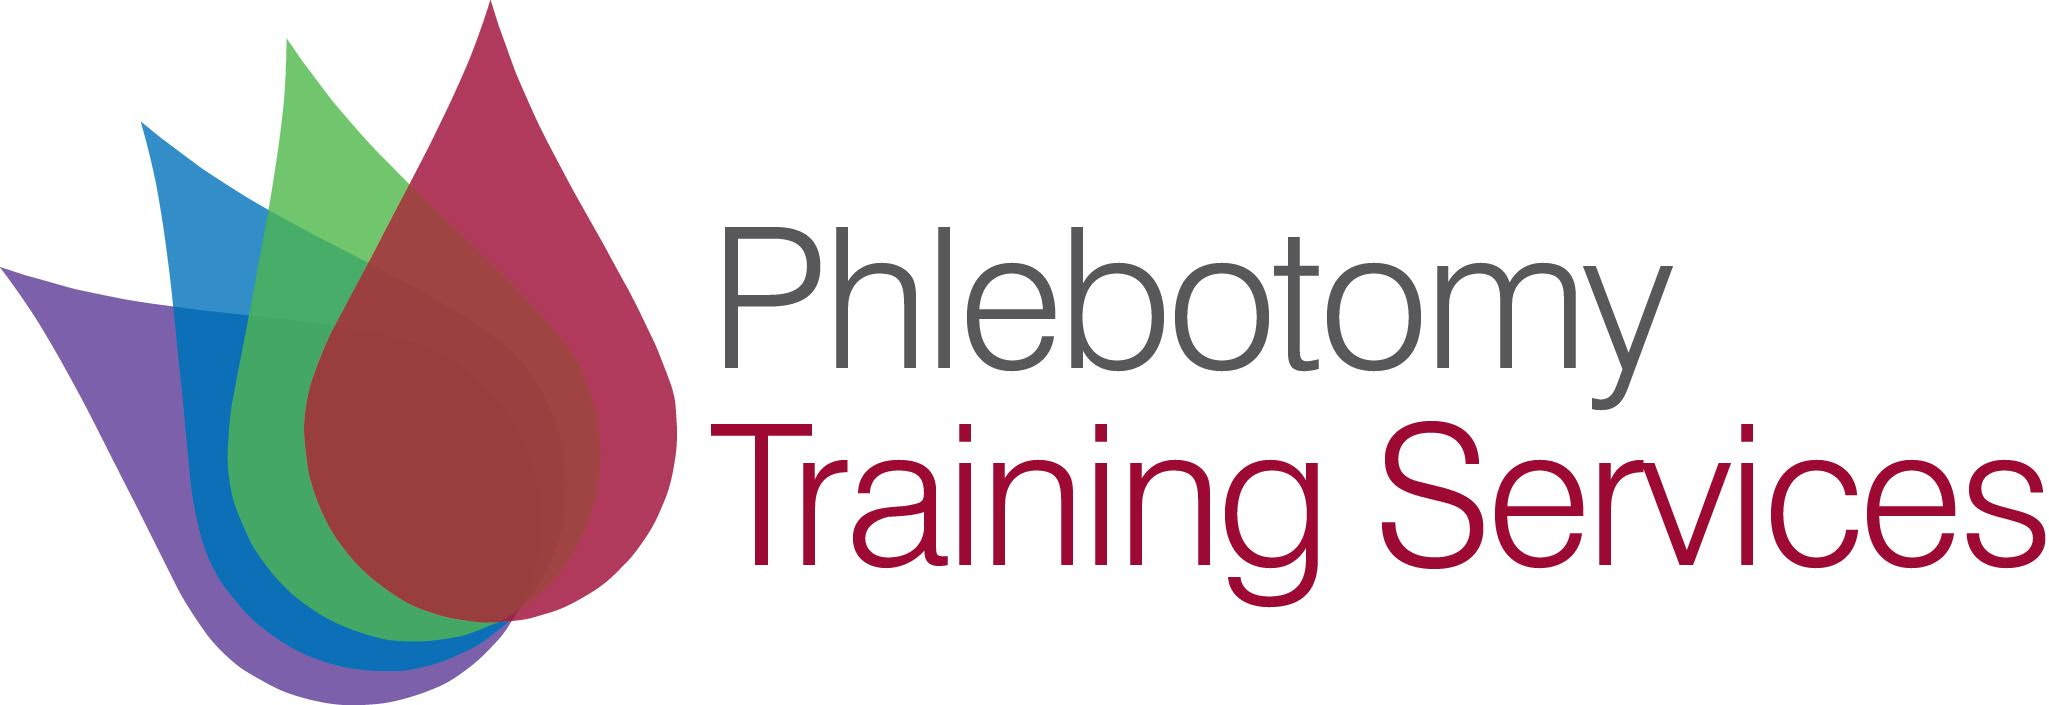 Clinicmate Phlebotomy Training Services